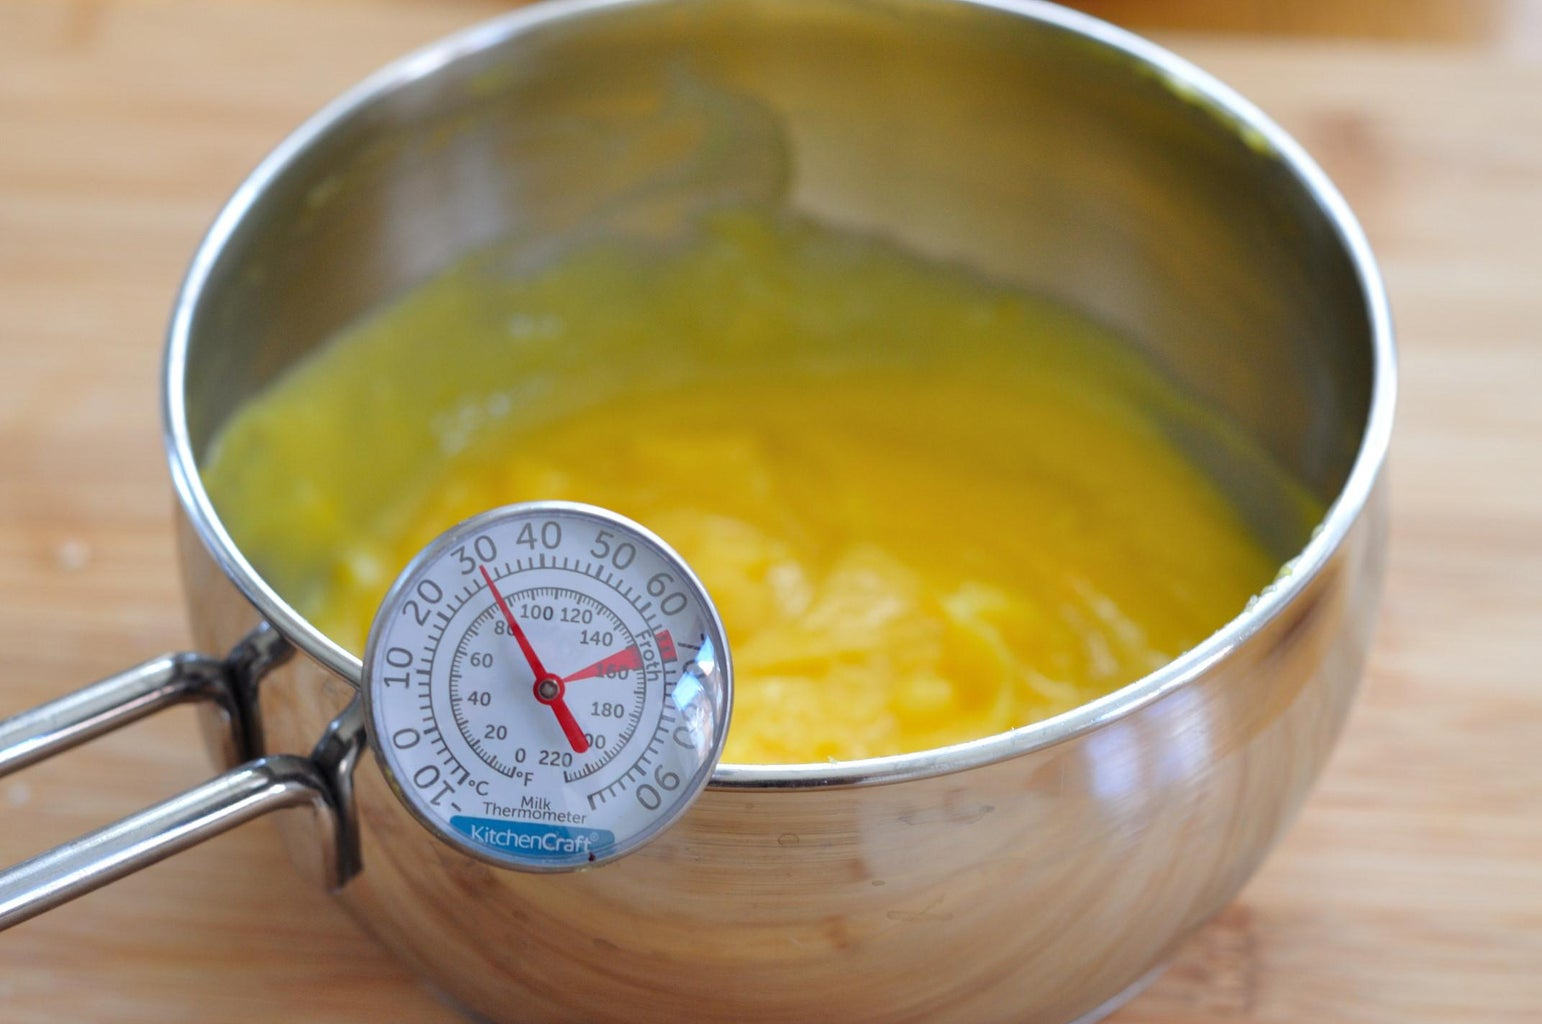 The Lemon Curd - Ready to Use!